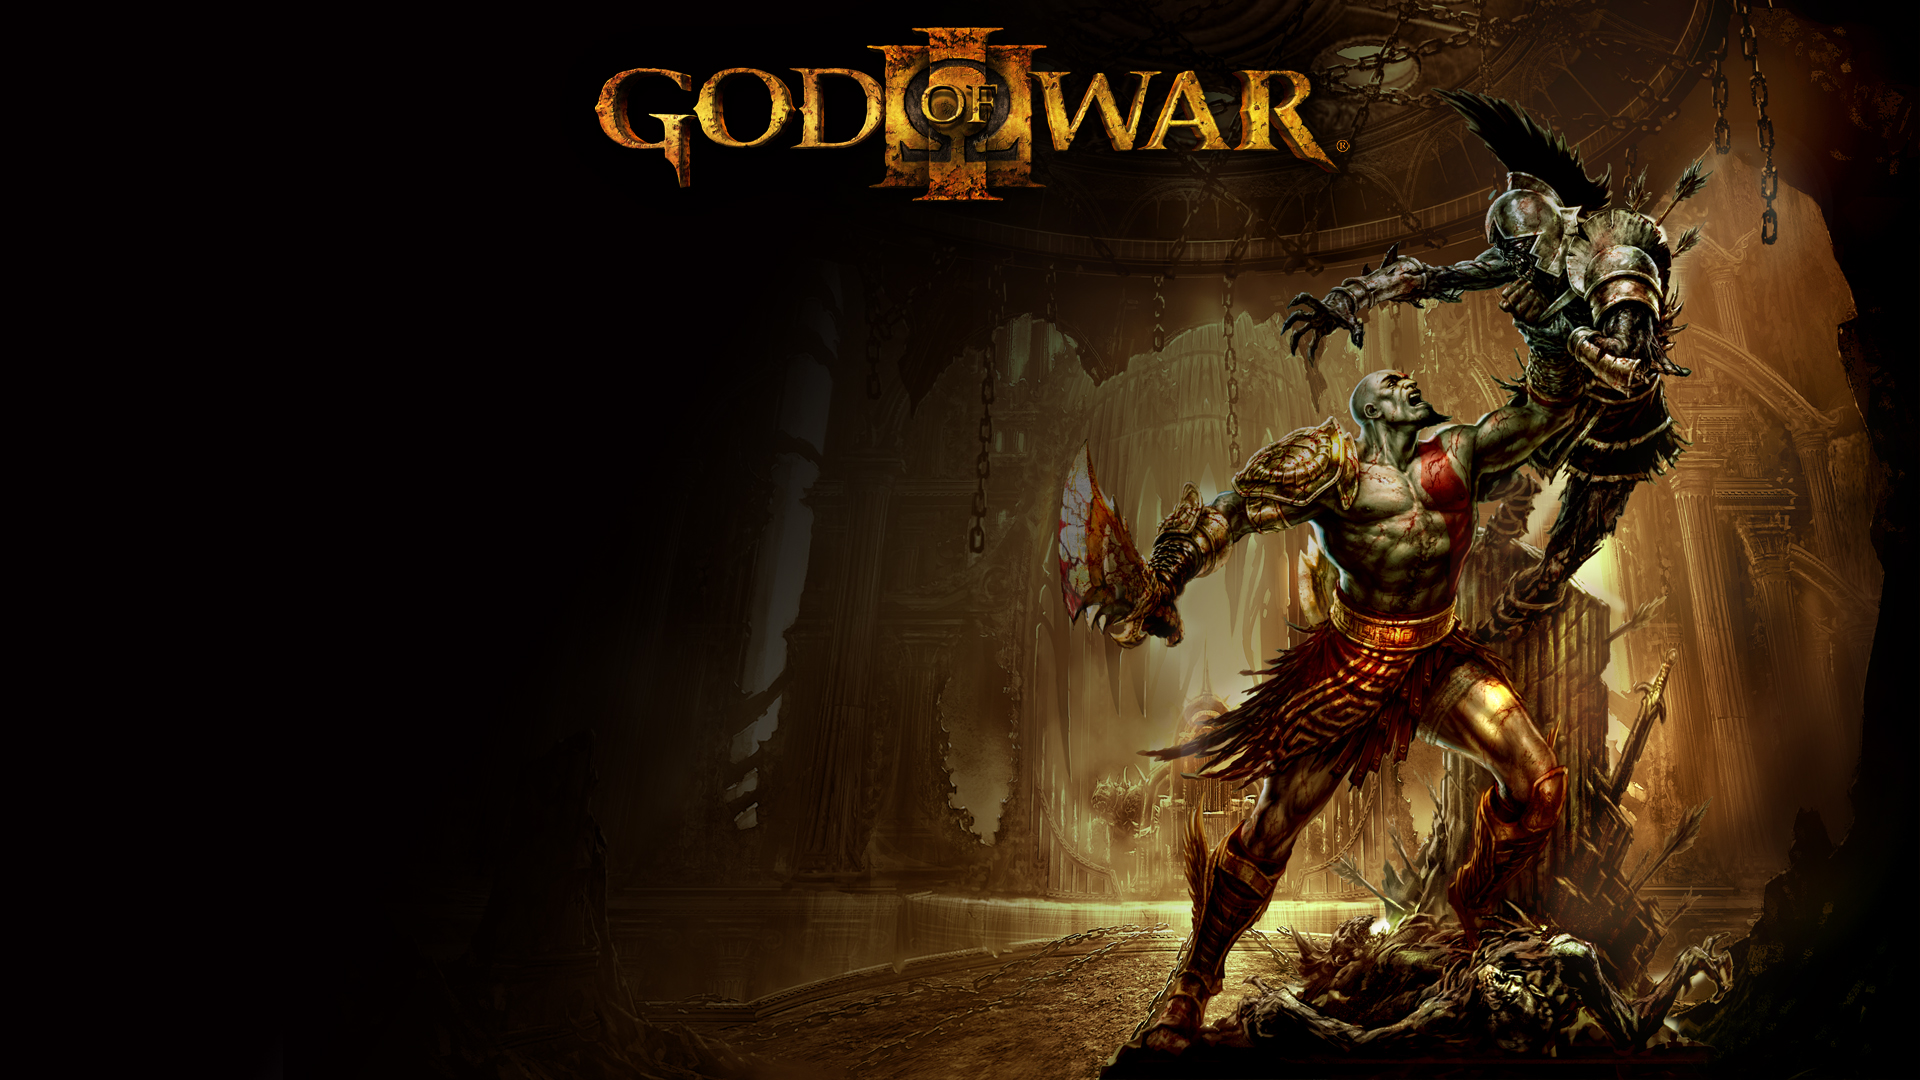 God of War III CE Blu-ray may include the PS2 games, hints survey